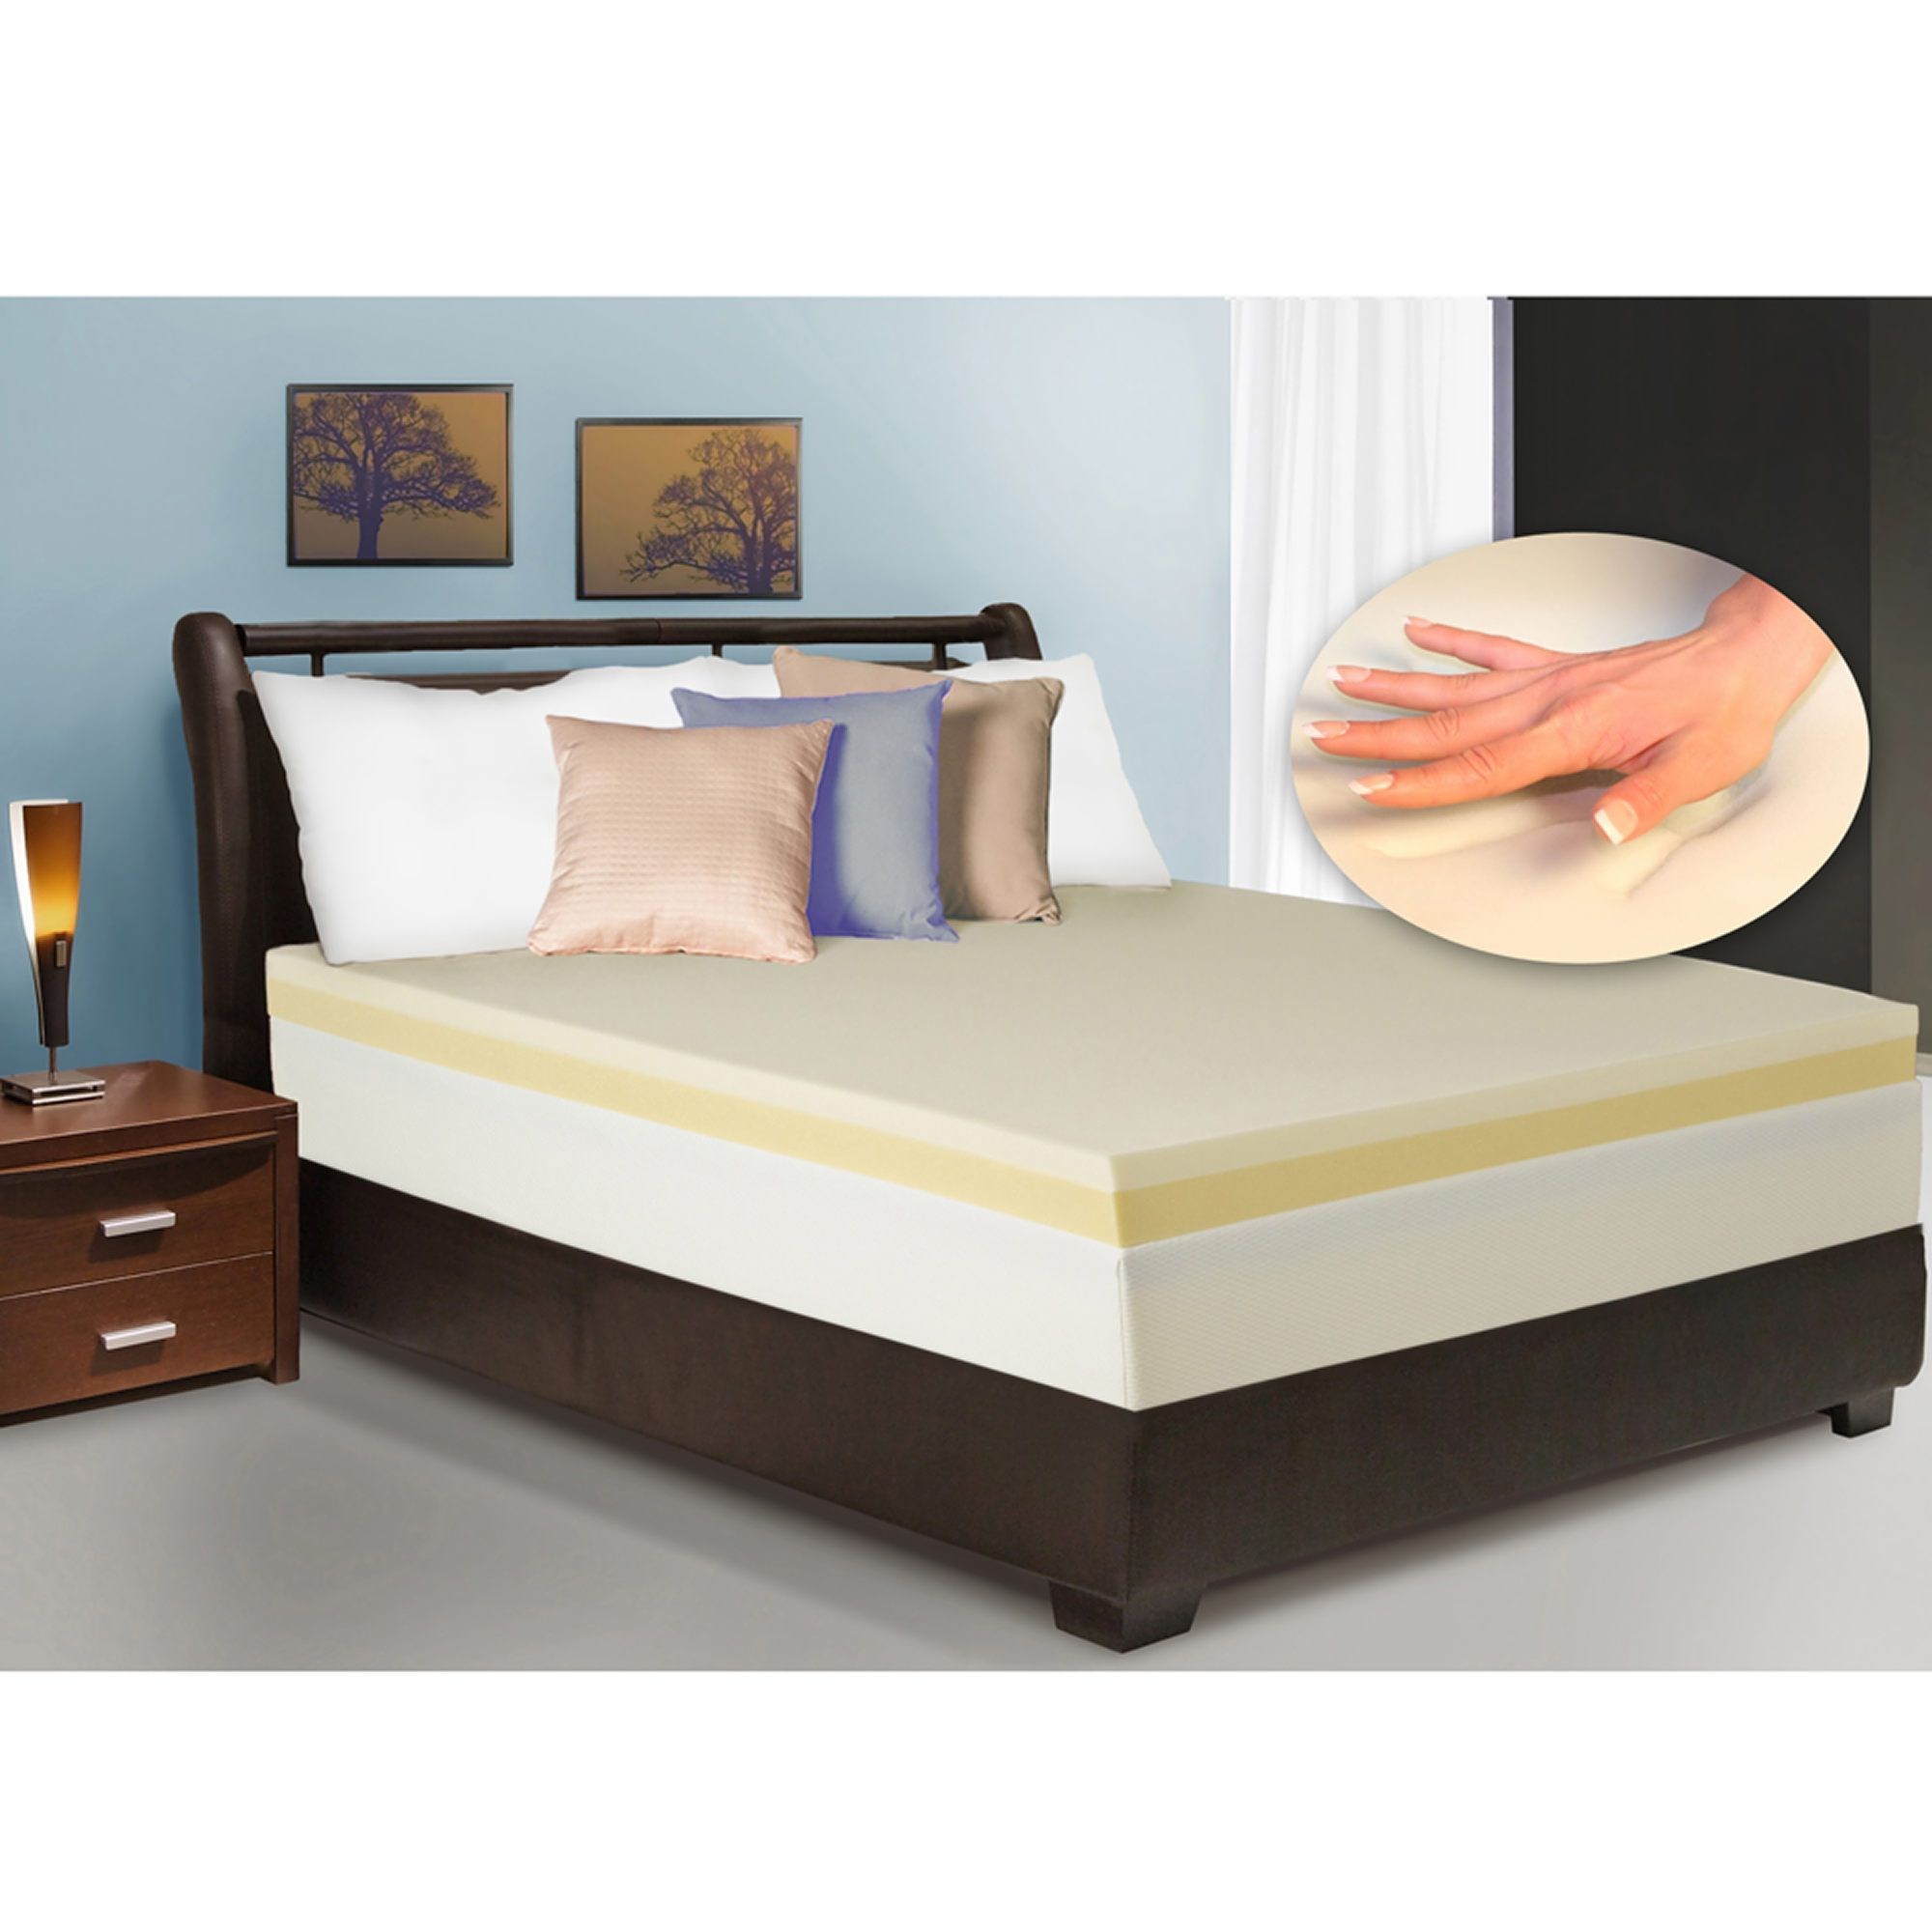 Cradlesoft 4 Dual Layer Memory Foam King Size Revitalizer Plus Mattress Topper